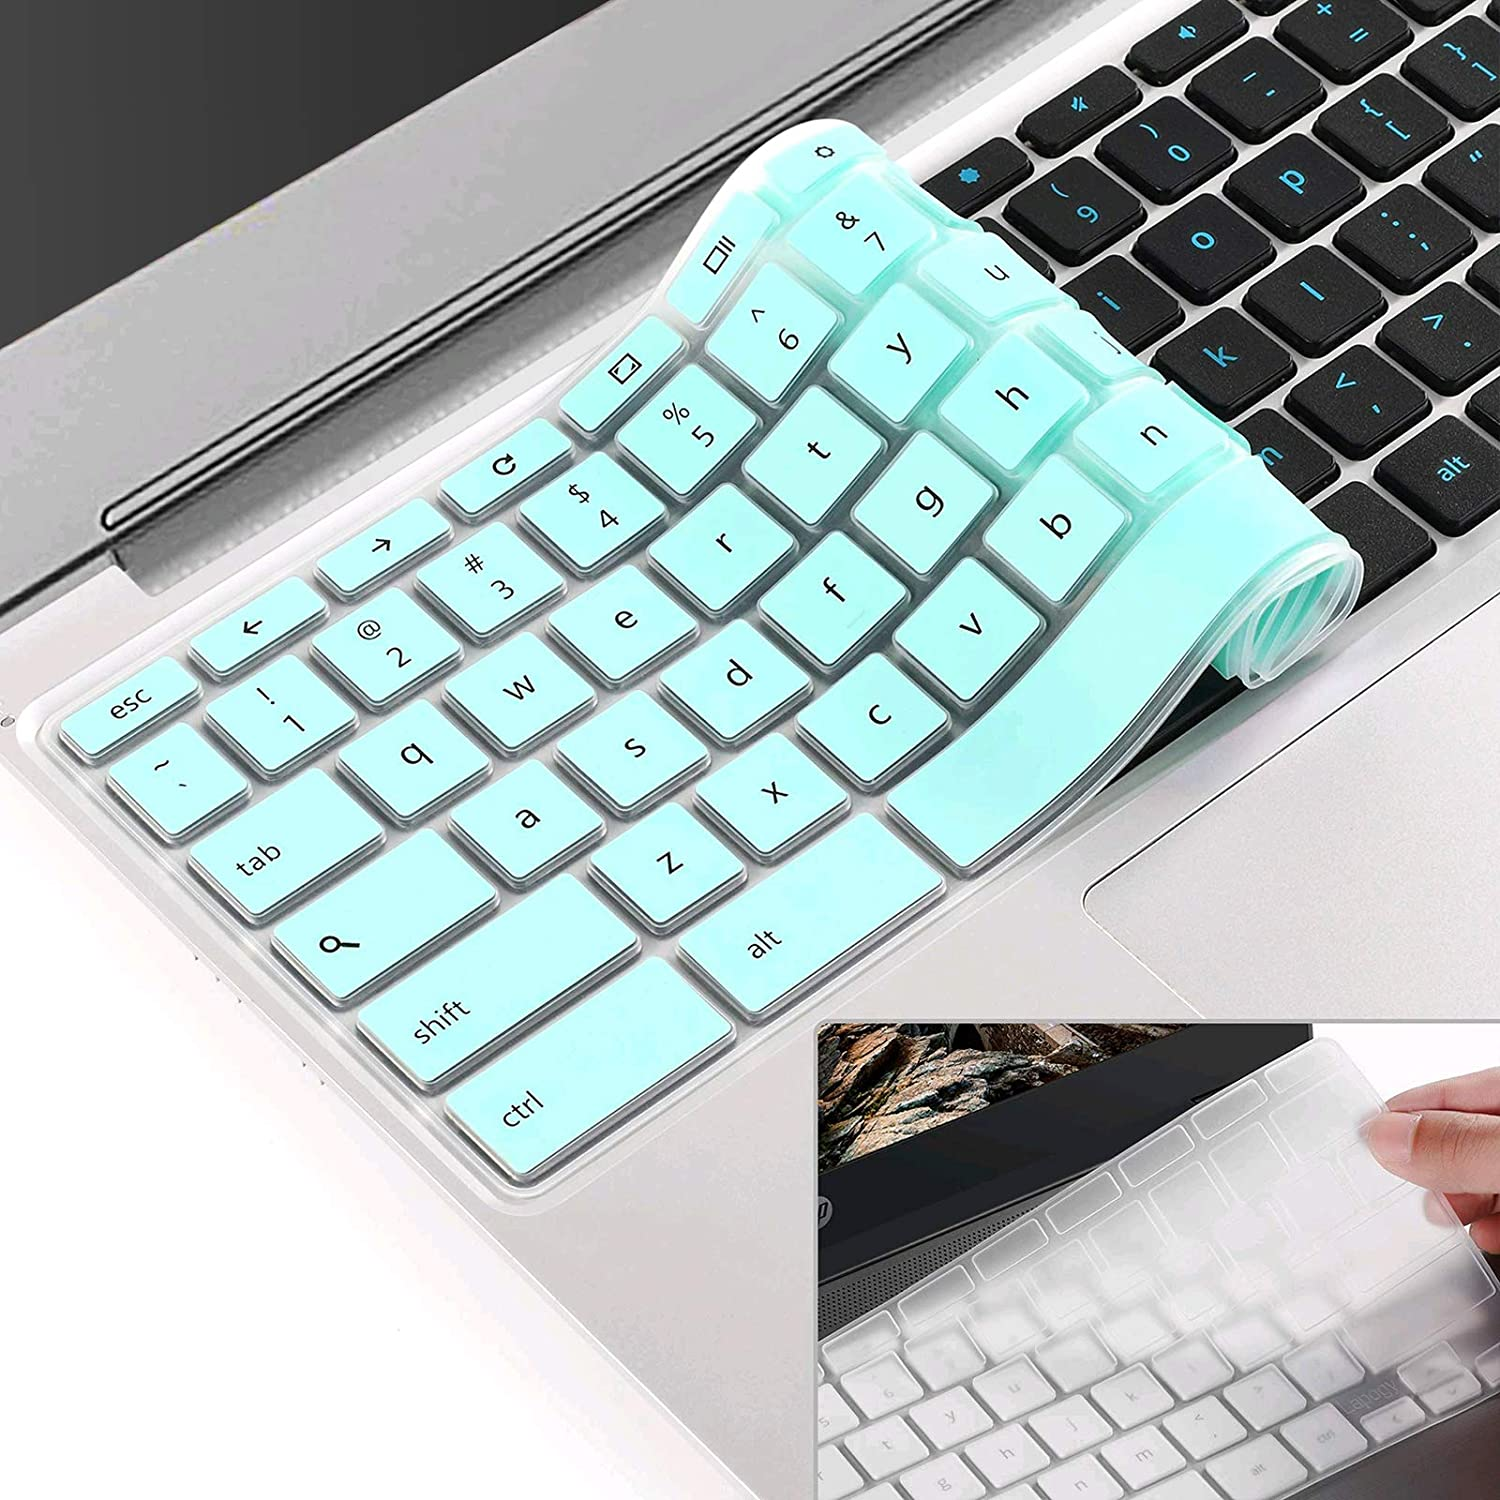 [2 pcs] Keyboard Cover Skin for Dell Chromebook 5190,Dell Chromebook 3100/3180/3189/3181/3120,dell chromebook Keyboard Cover 11.6 inch,dell chromebook 3380 Keyboard Cover 13.3 inch(Mint+Clear)